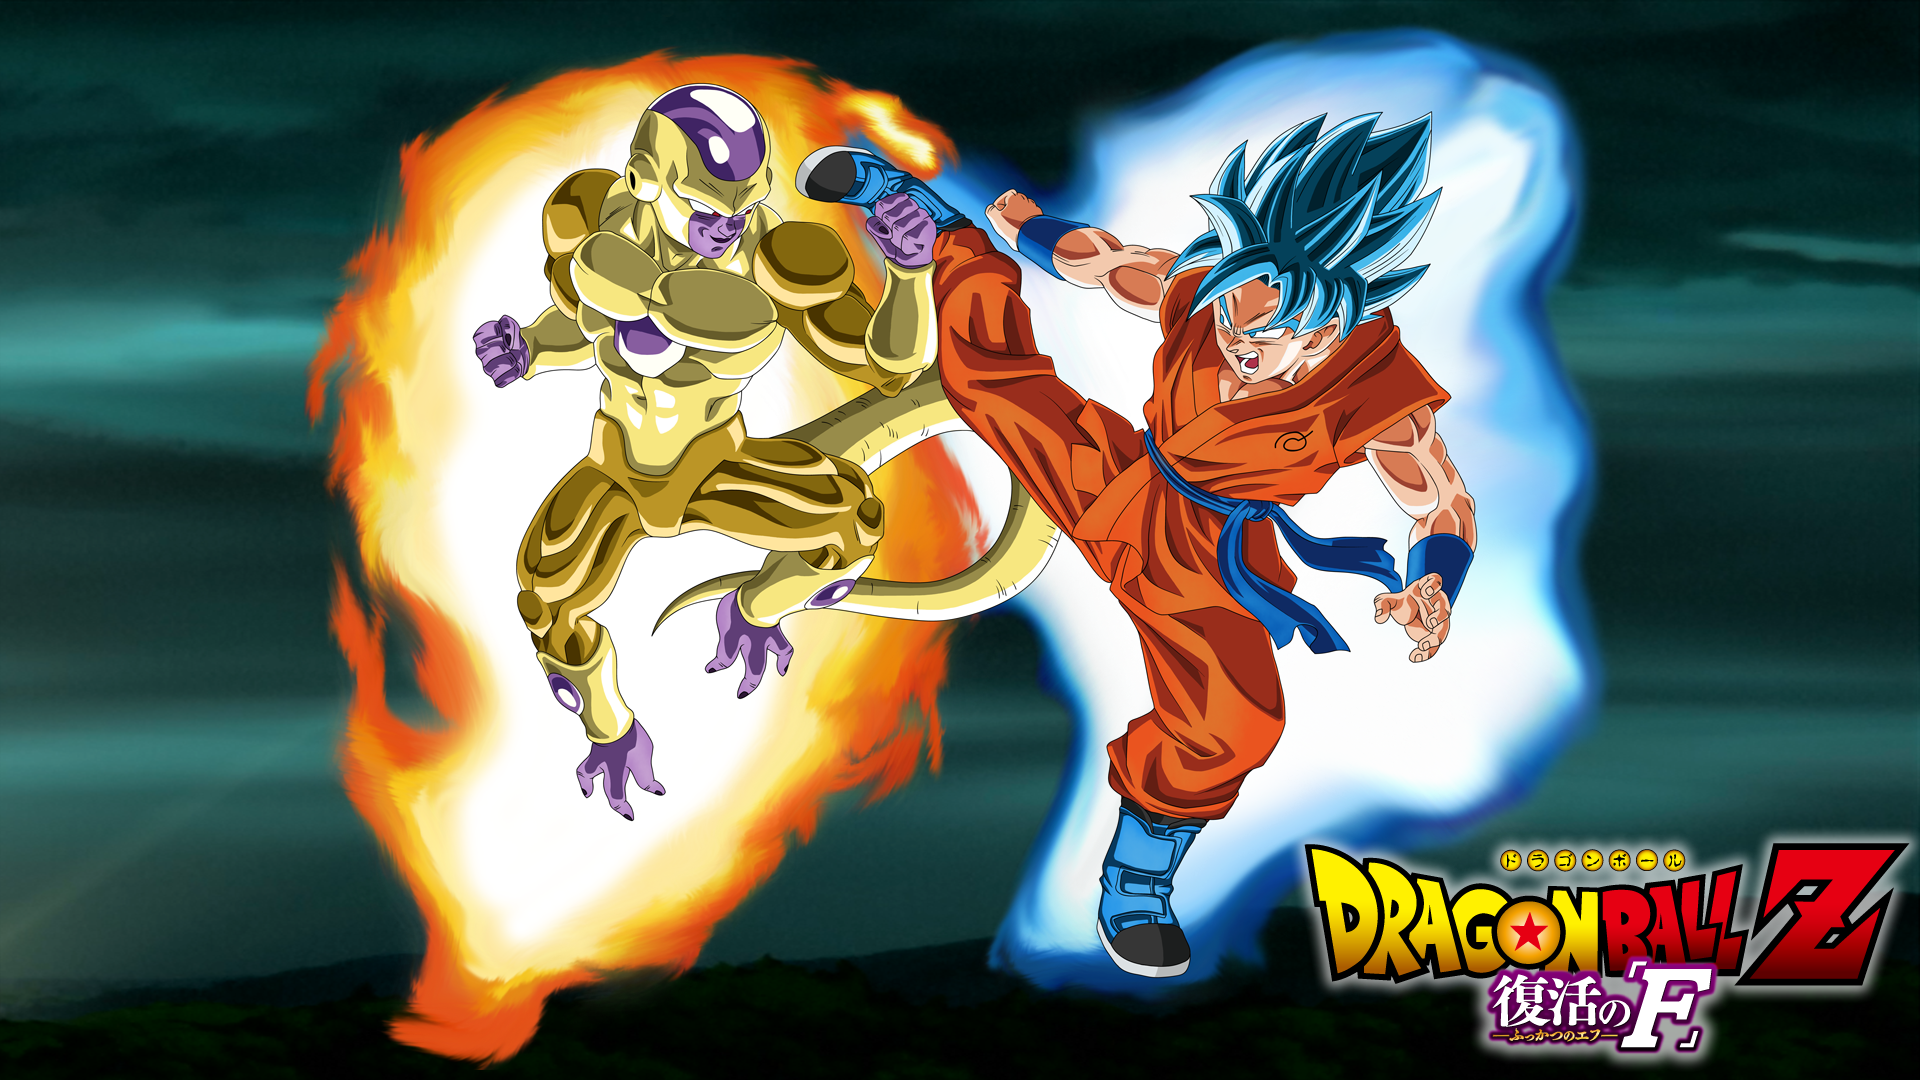 Goku vs golden frieza dragon ball super oral steroids and eyes